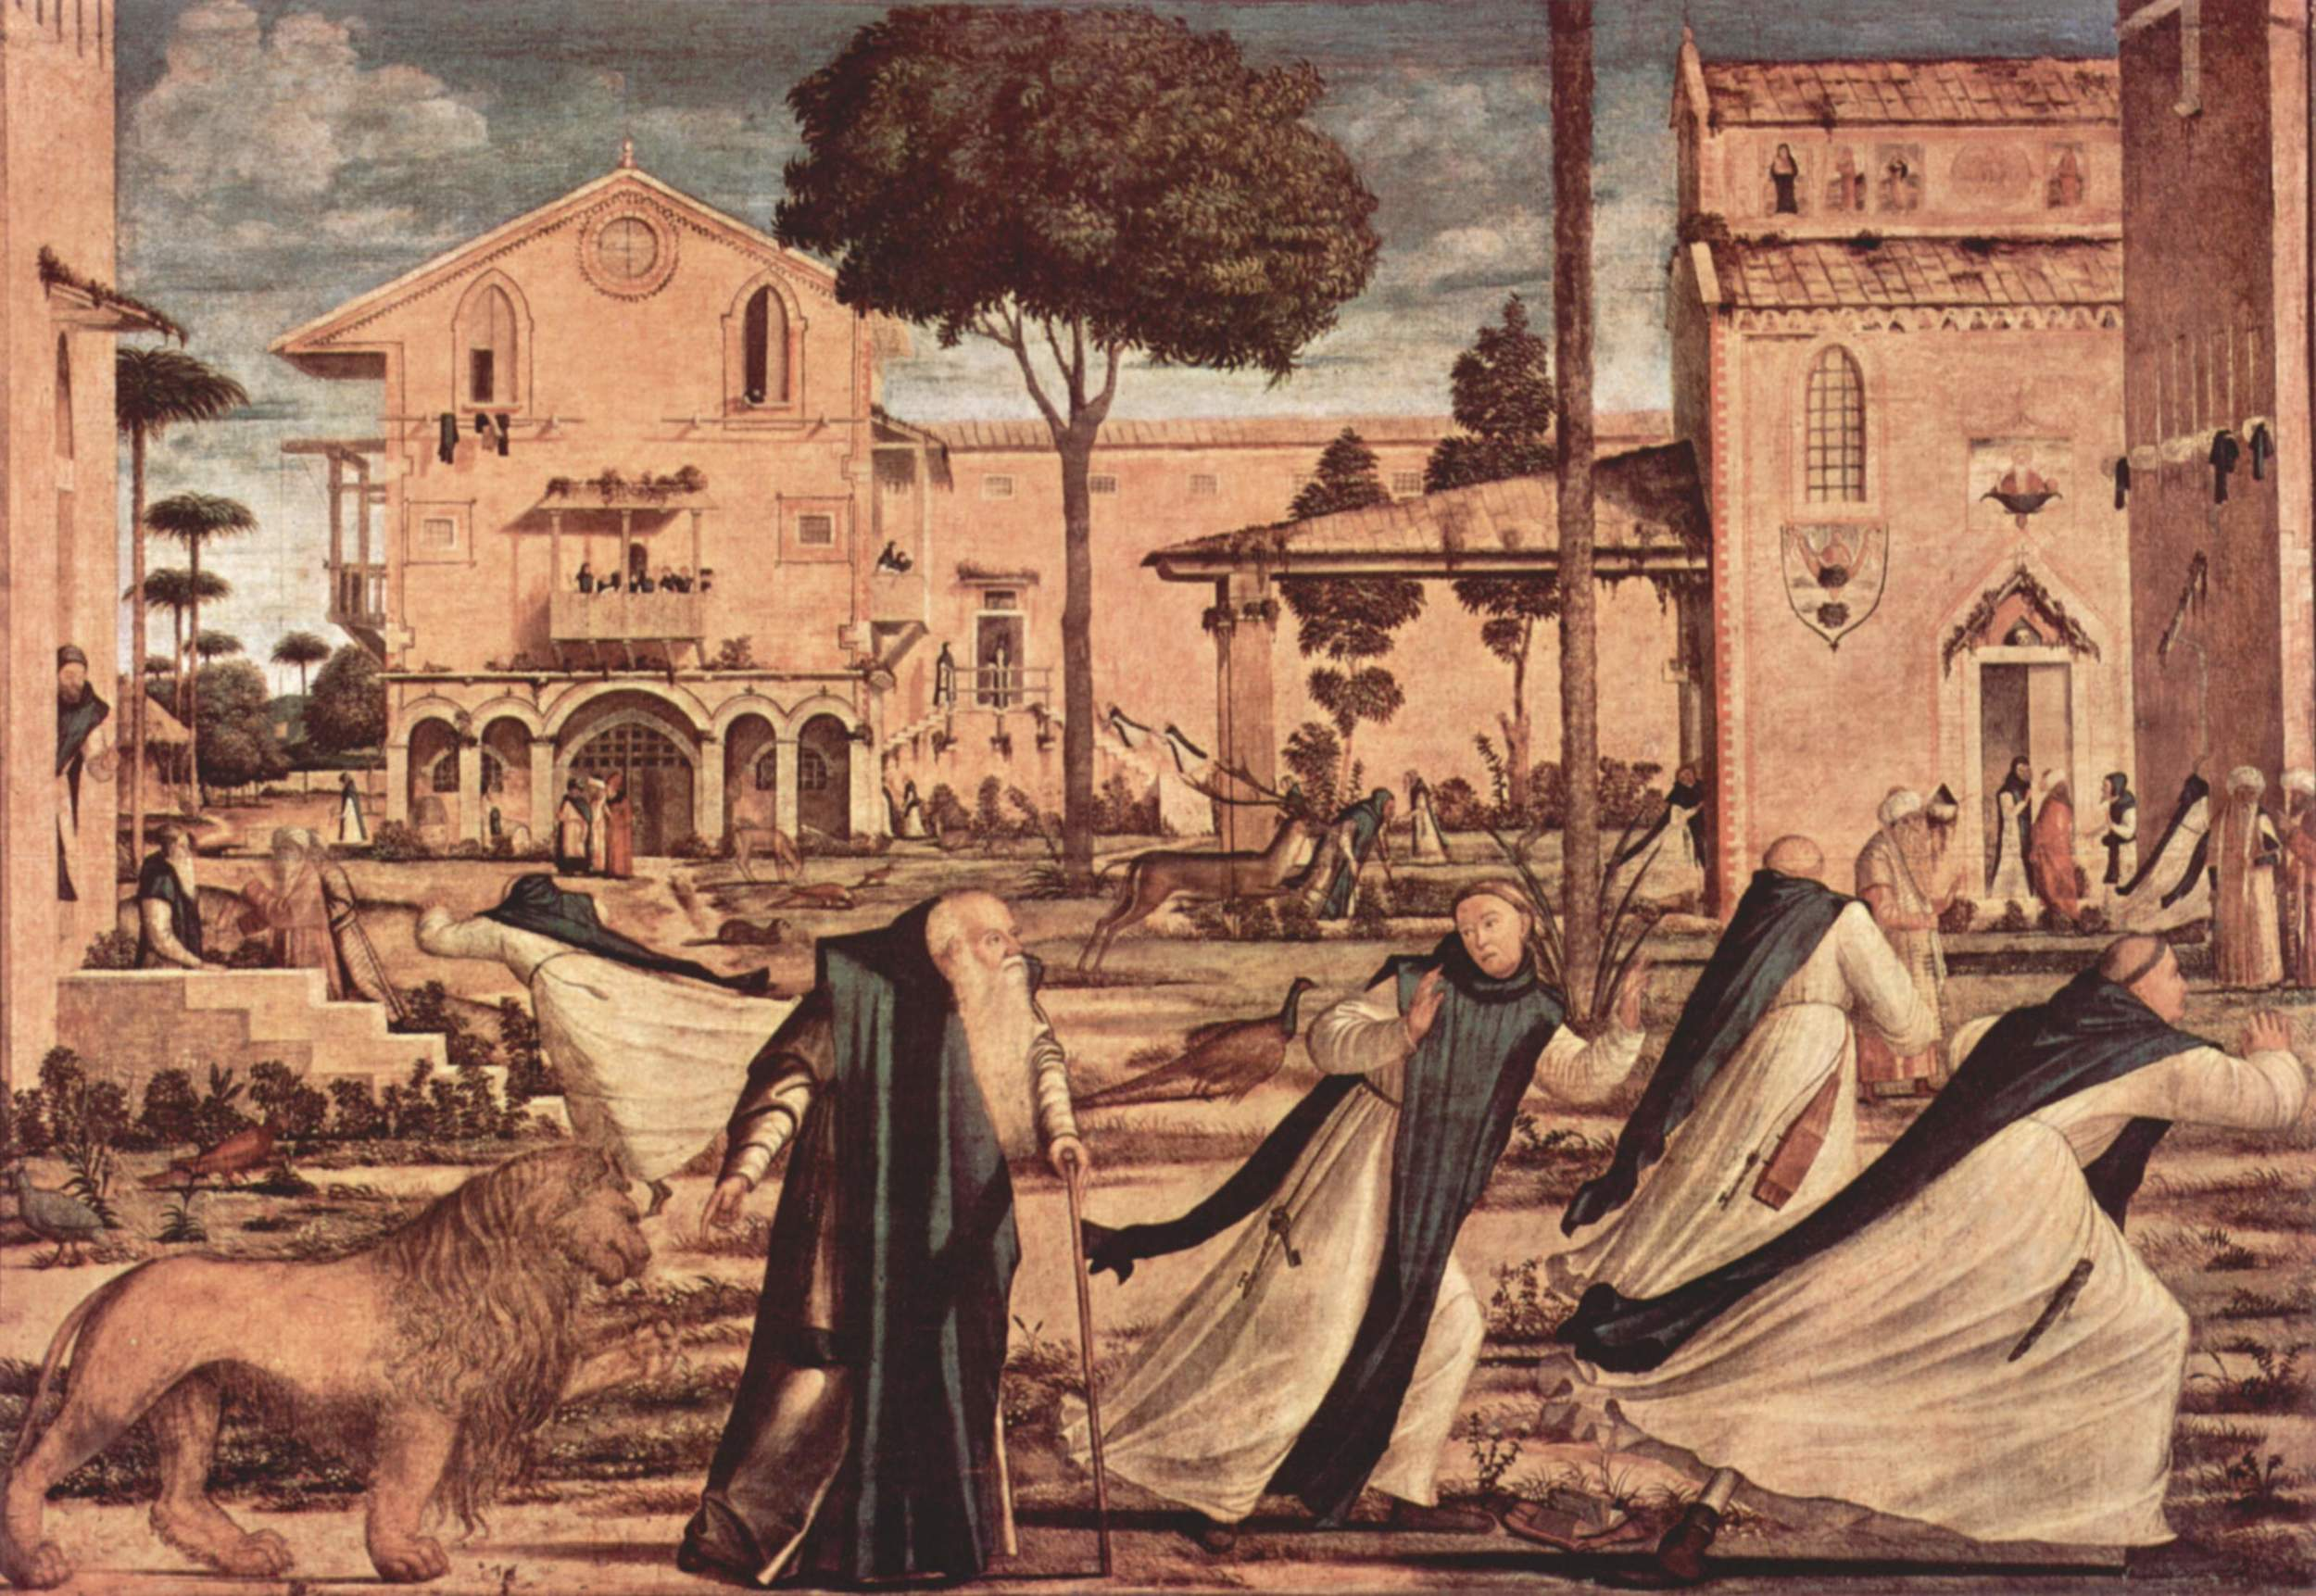 Vittorre Carpaccio's Saint Jerome and the Lion in the Monastery, 1509.